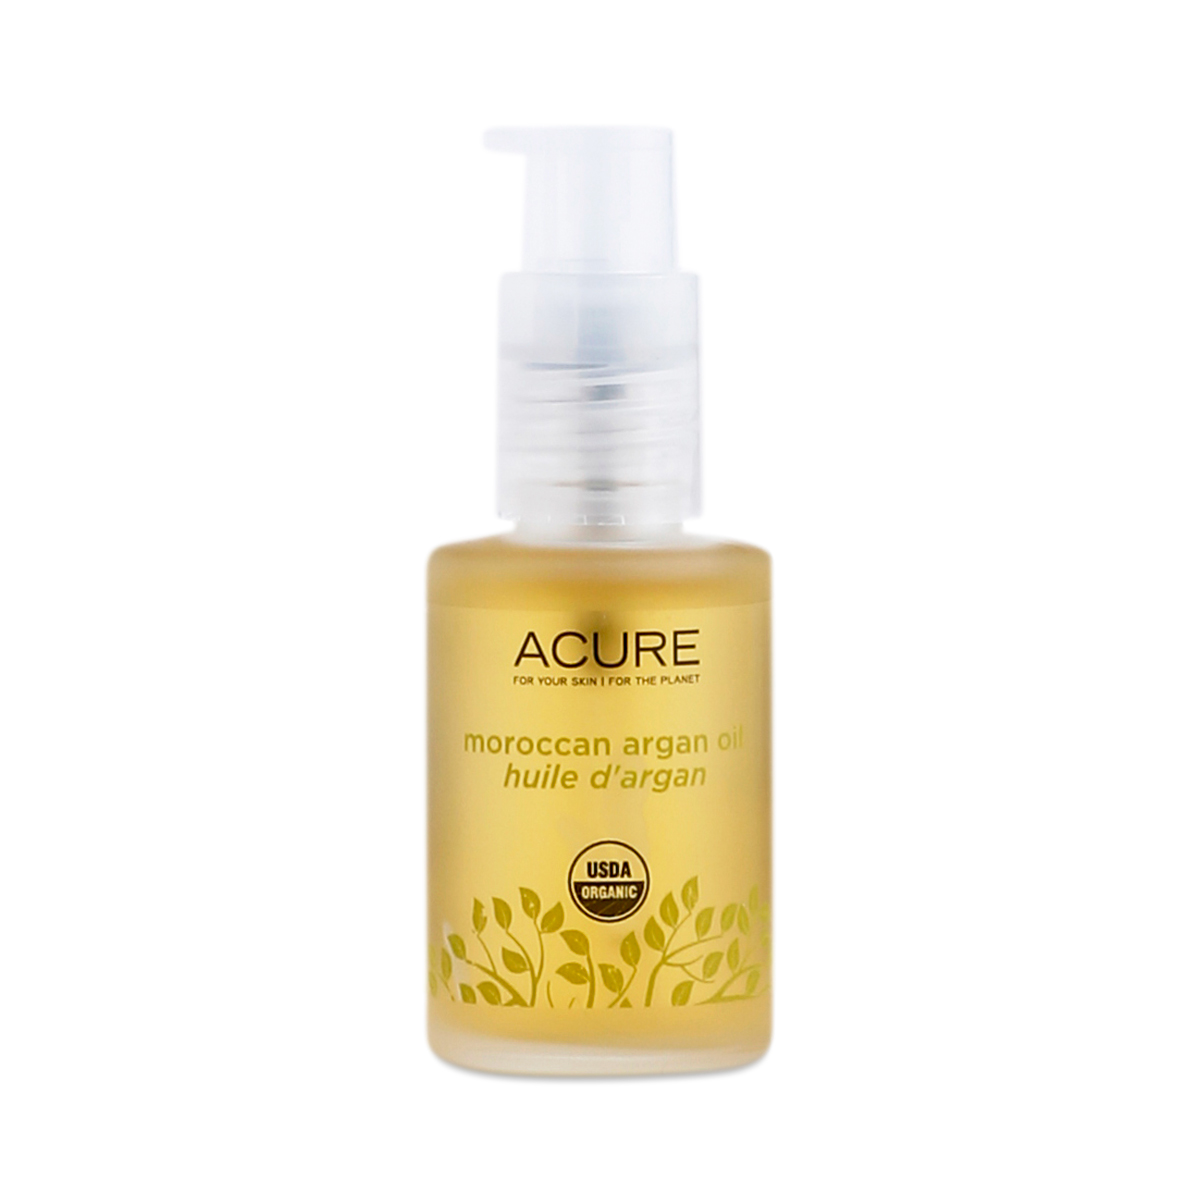 Moroccan Argan Oil By Acure Organics